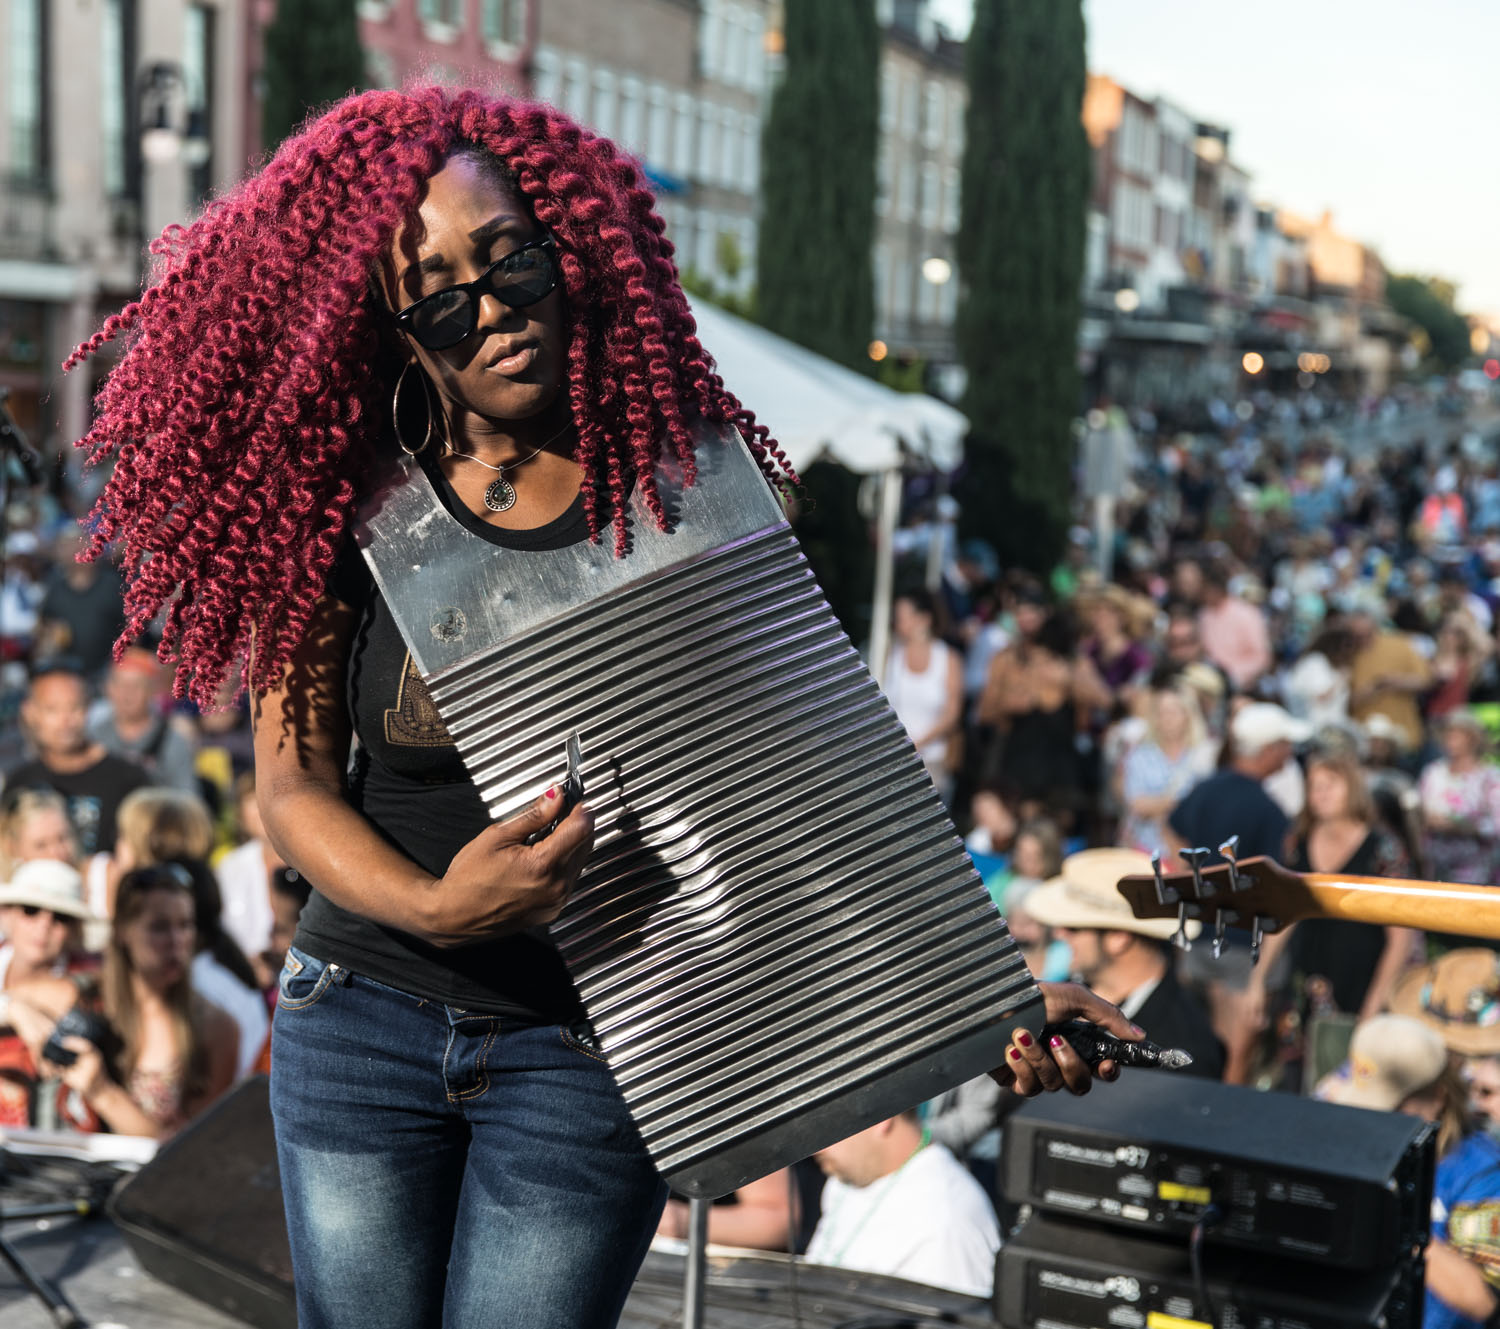 LaTasha Covington on washboard amidst a sea of fans at the Cajun/Zydeco Stage.